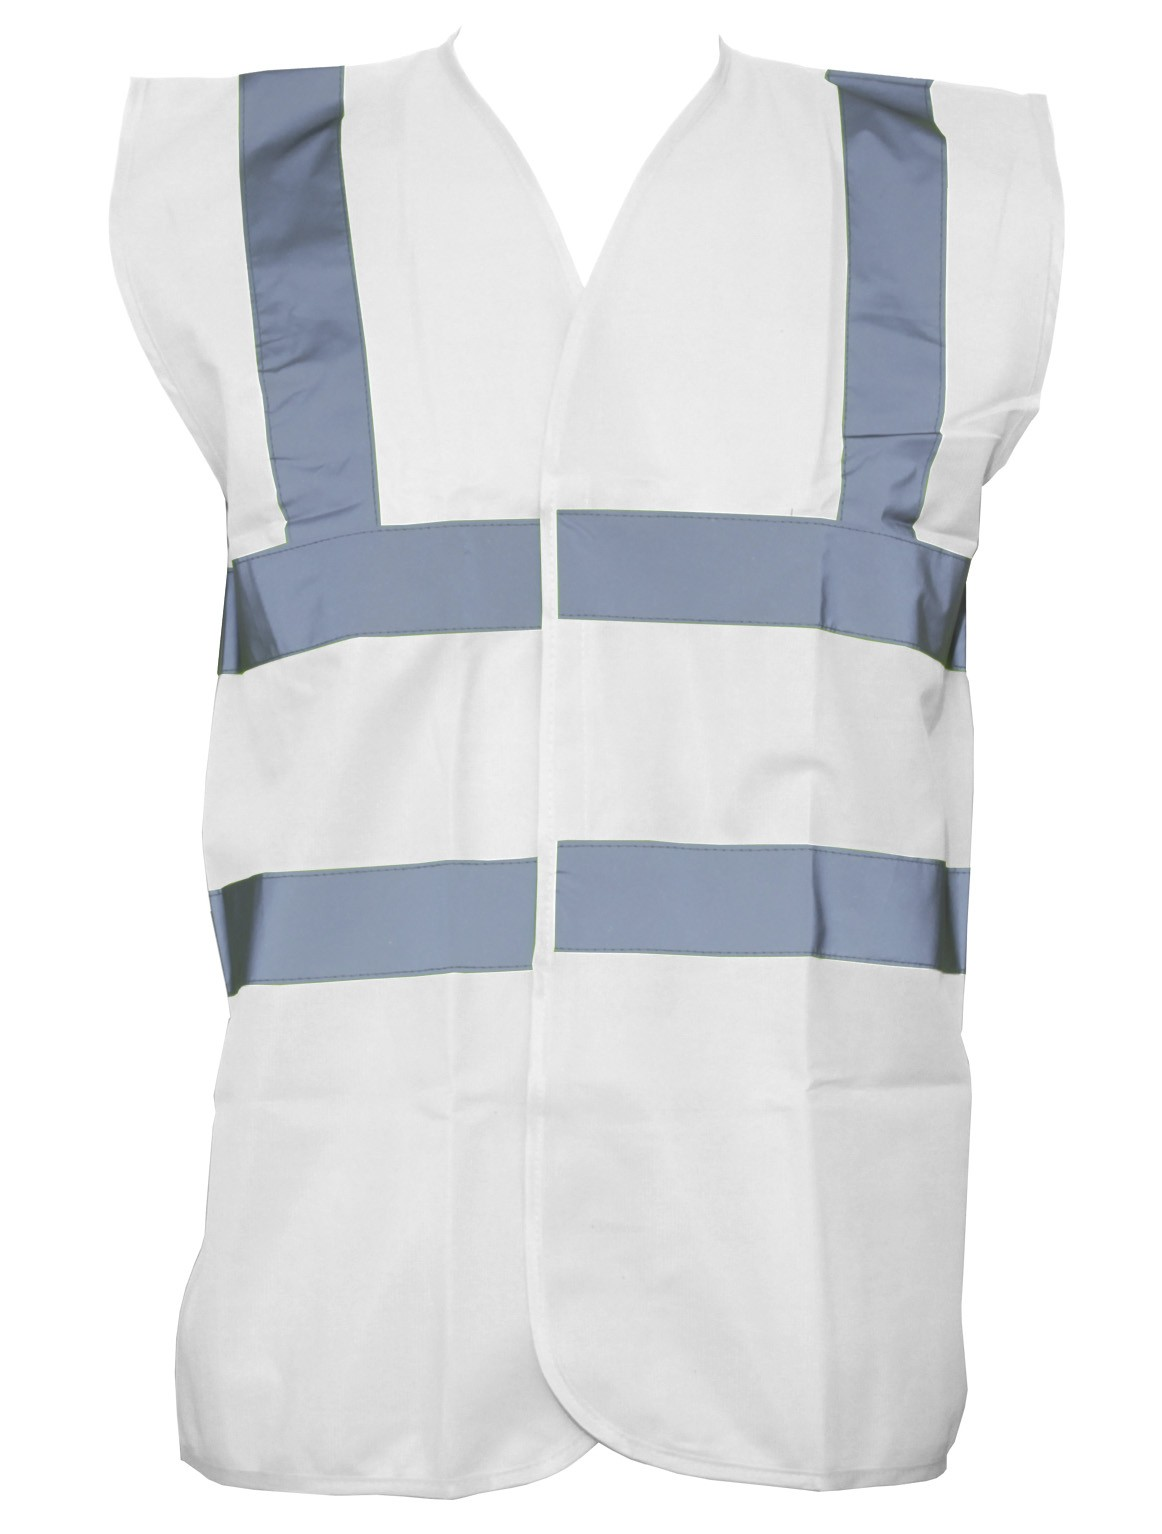 White High Visibility Vest Branded Safety Workwear